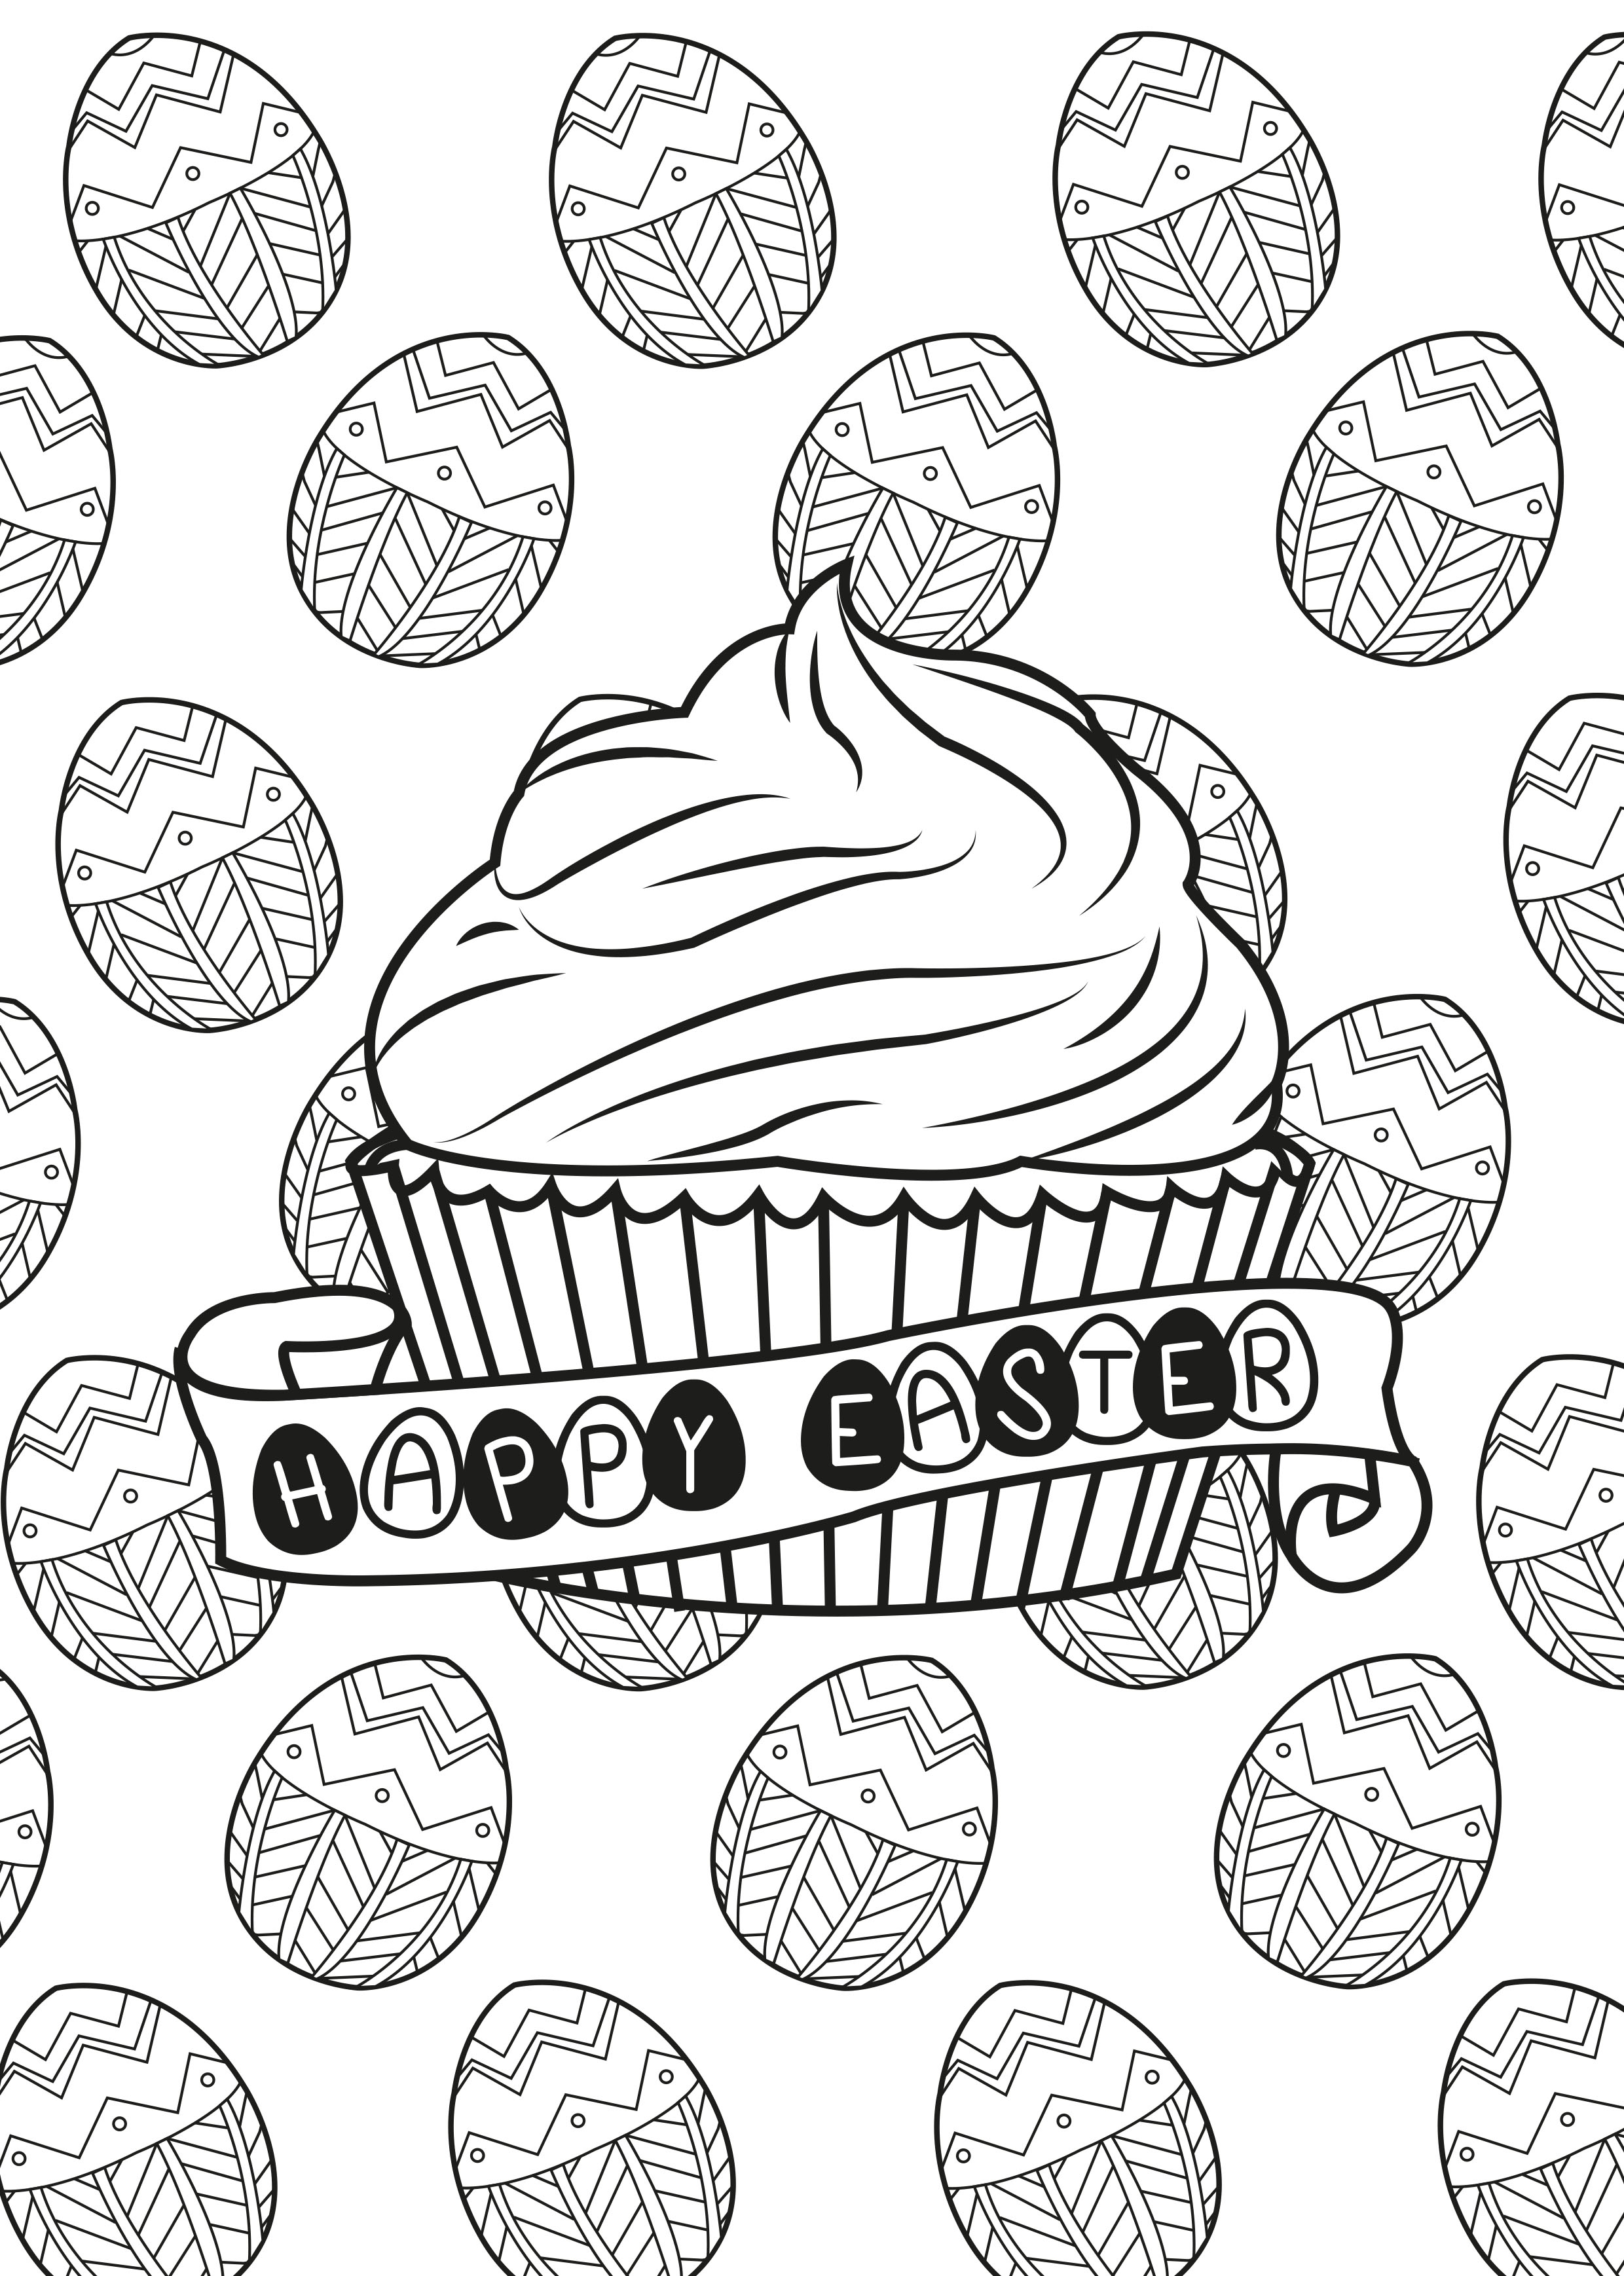 Cupcakes And Cakes Coloring Pages For Adults Justcolor